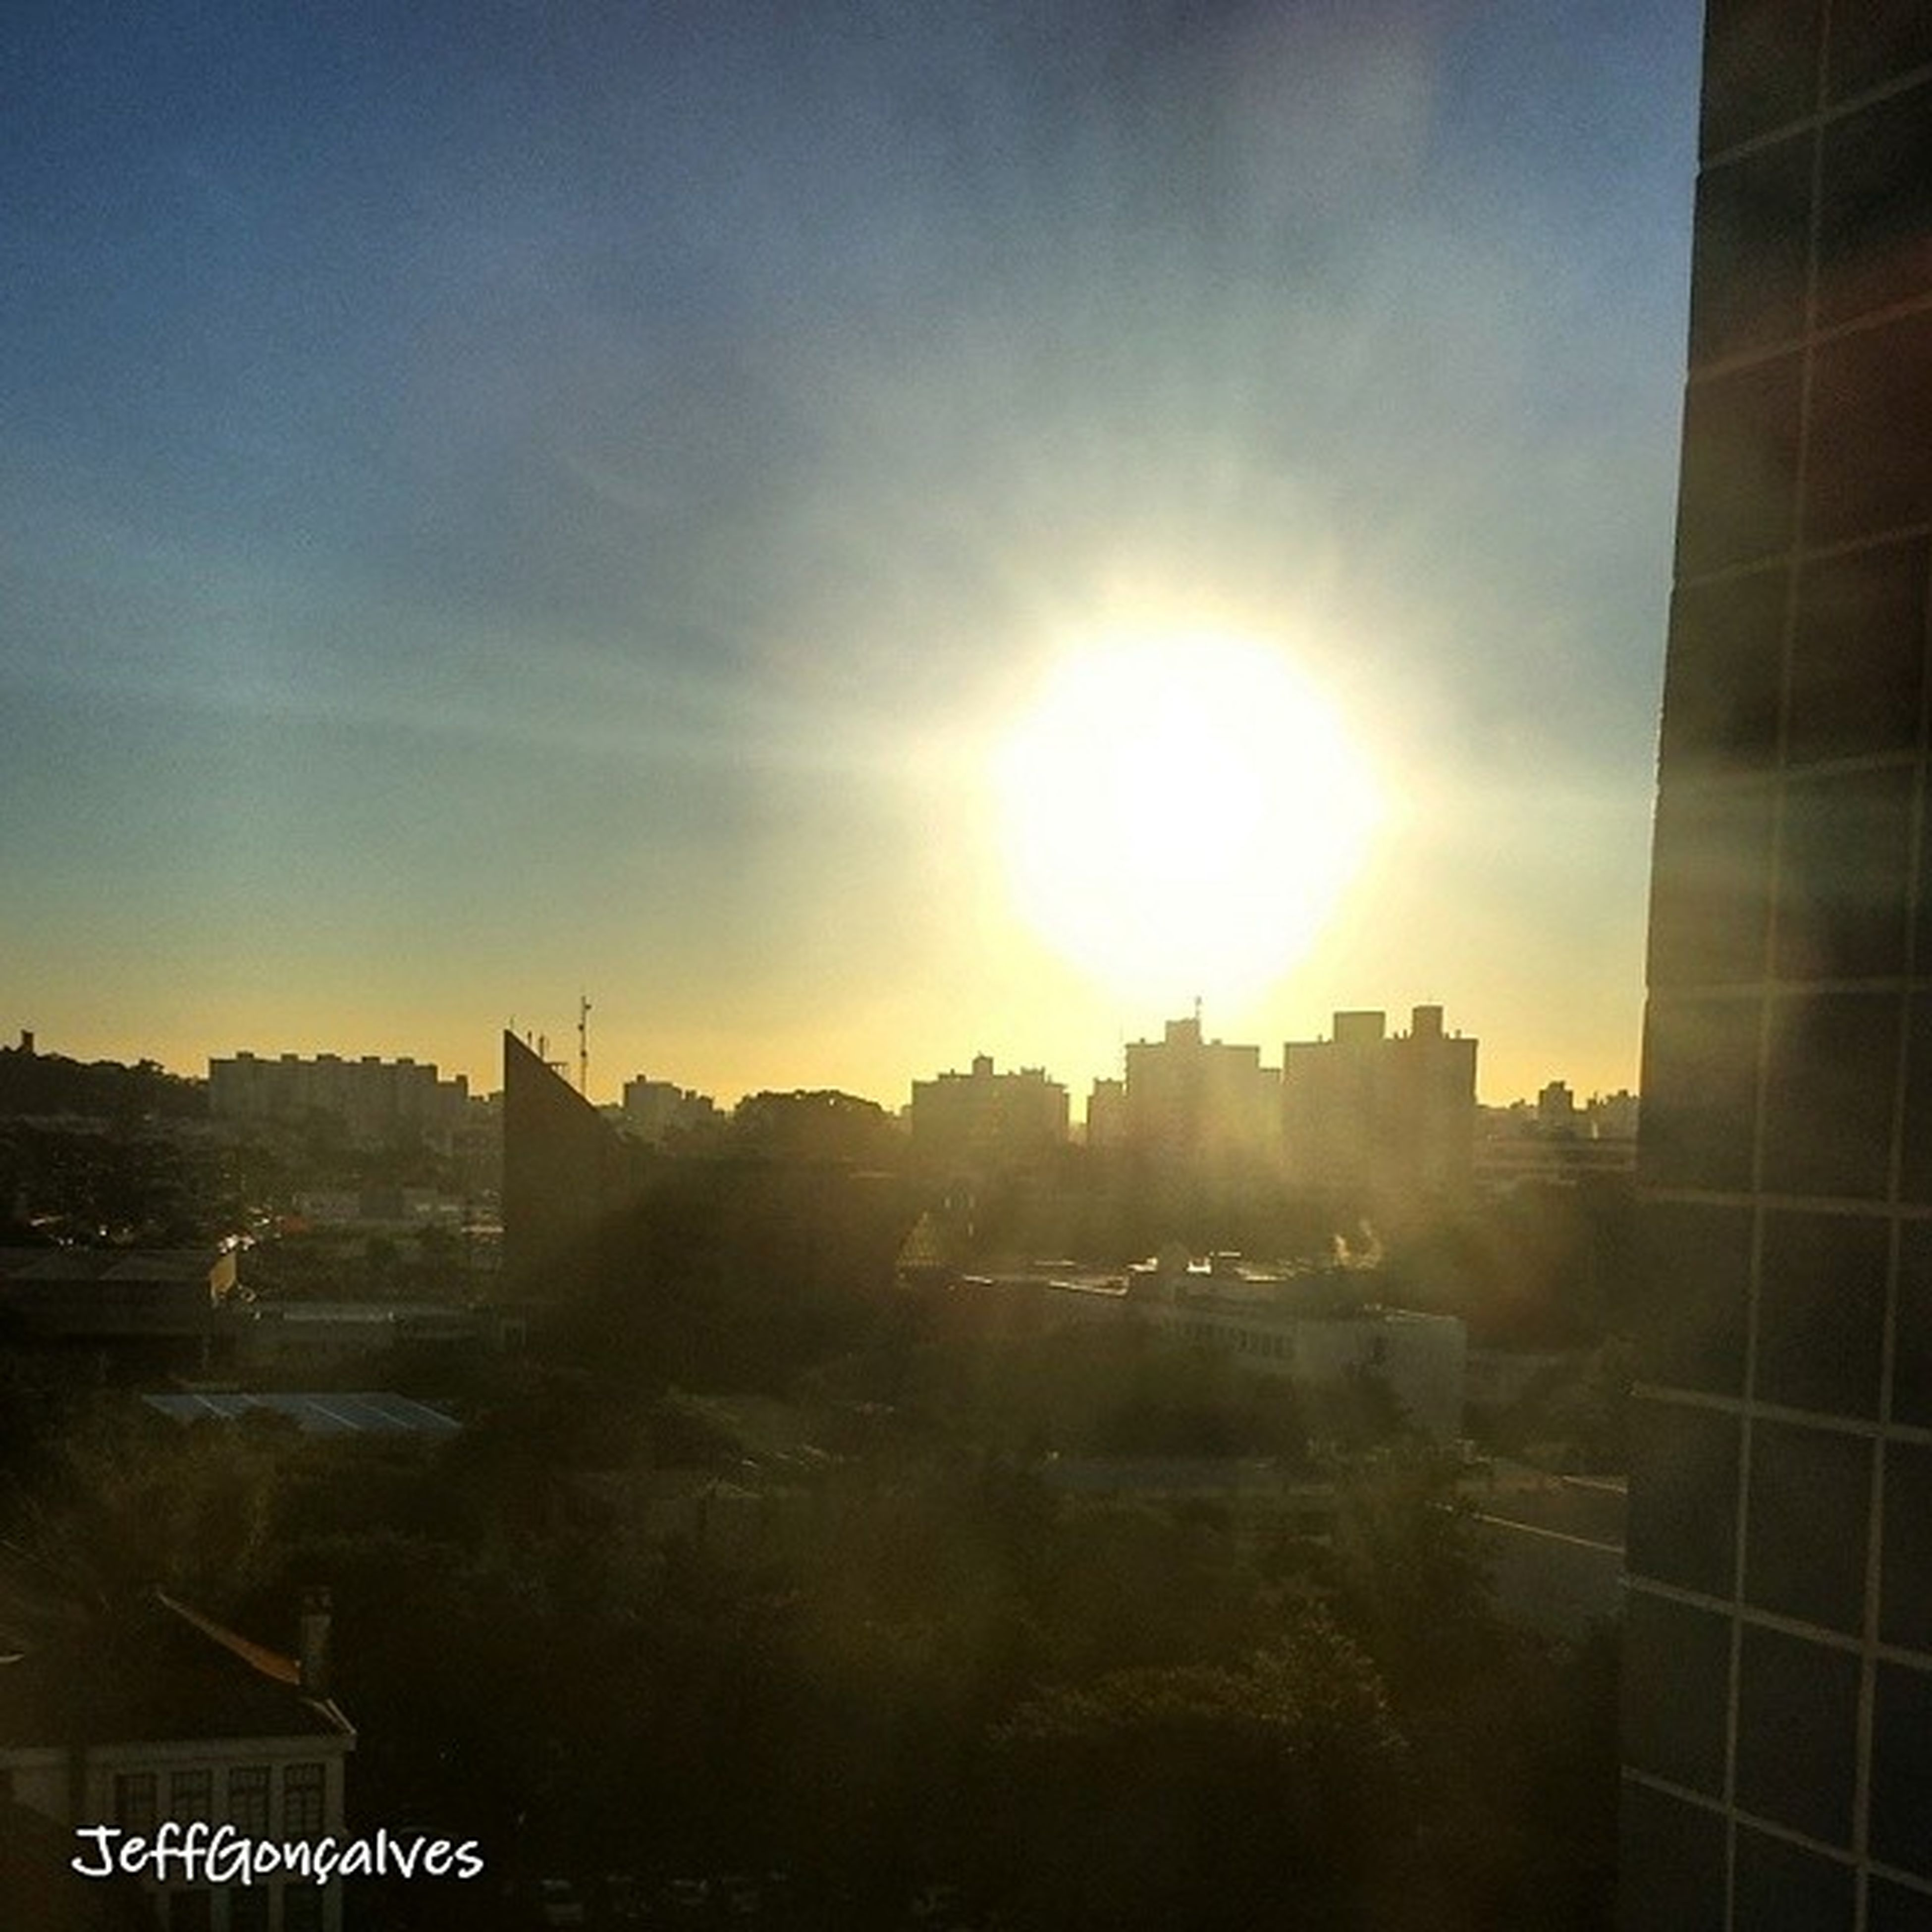 building exterior, architecture, built structure, sun, sunlight, sunbeam, city, sky, lens flare, cityscape, residential building, building, residential structure, sunset, residential district, sunny, outdoors, house, no people, bright